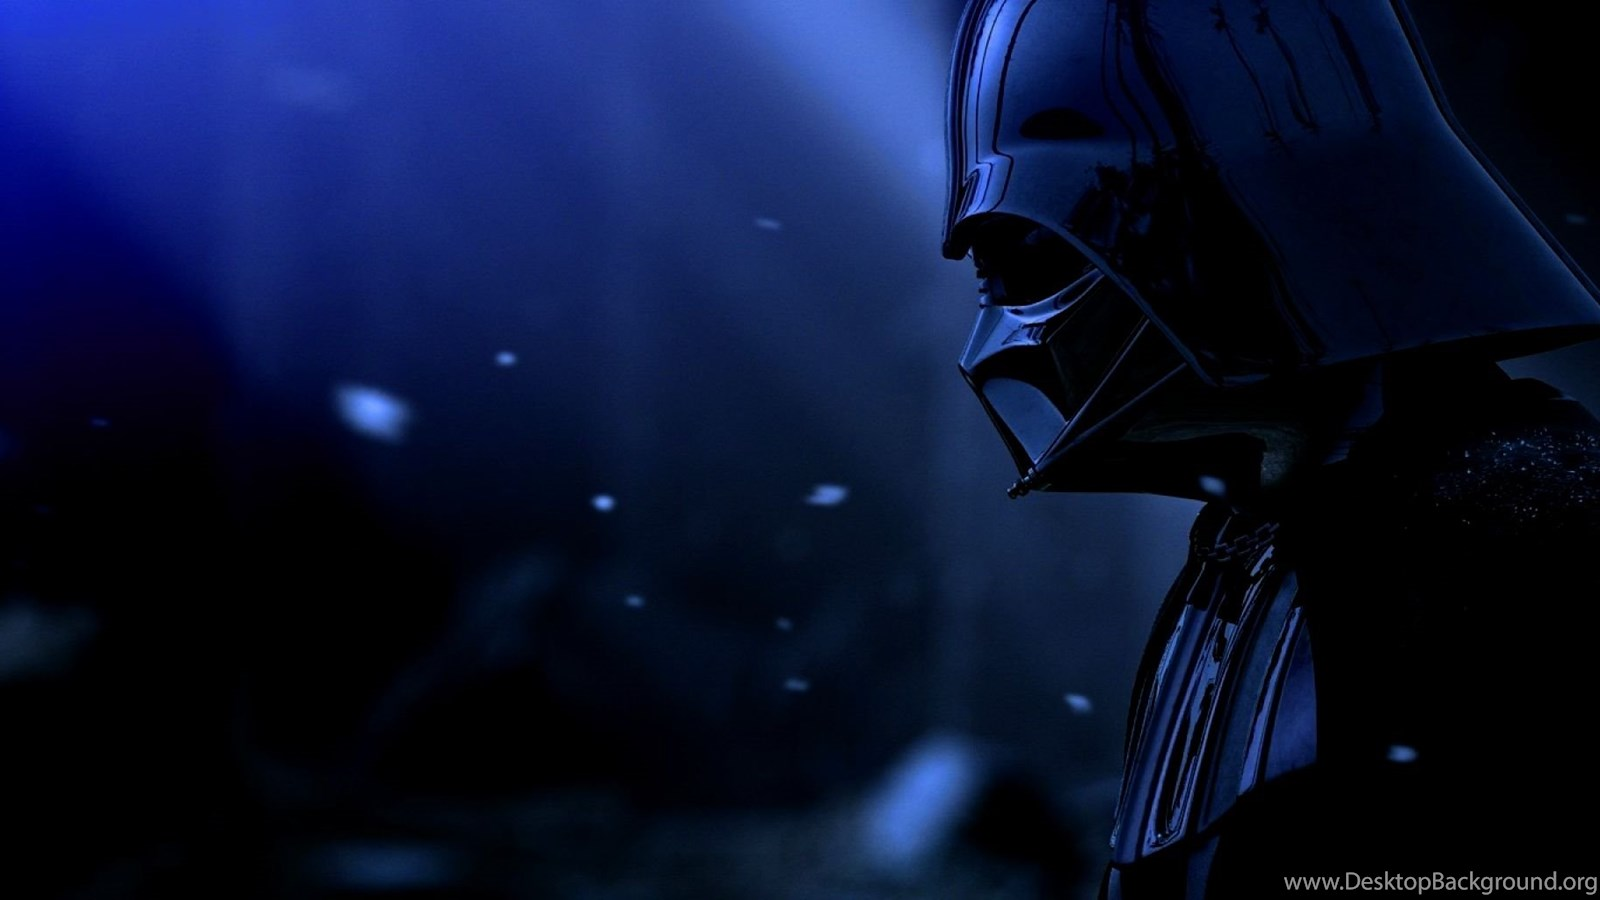 Star Wars Dual Monitor Wallpapers 2560 1024 High Definition